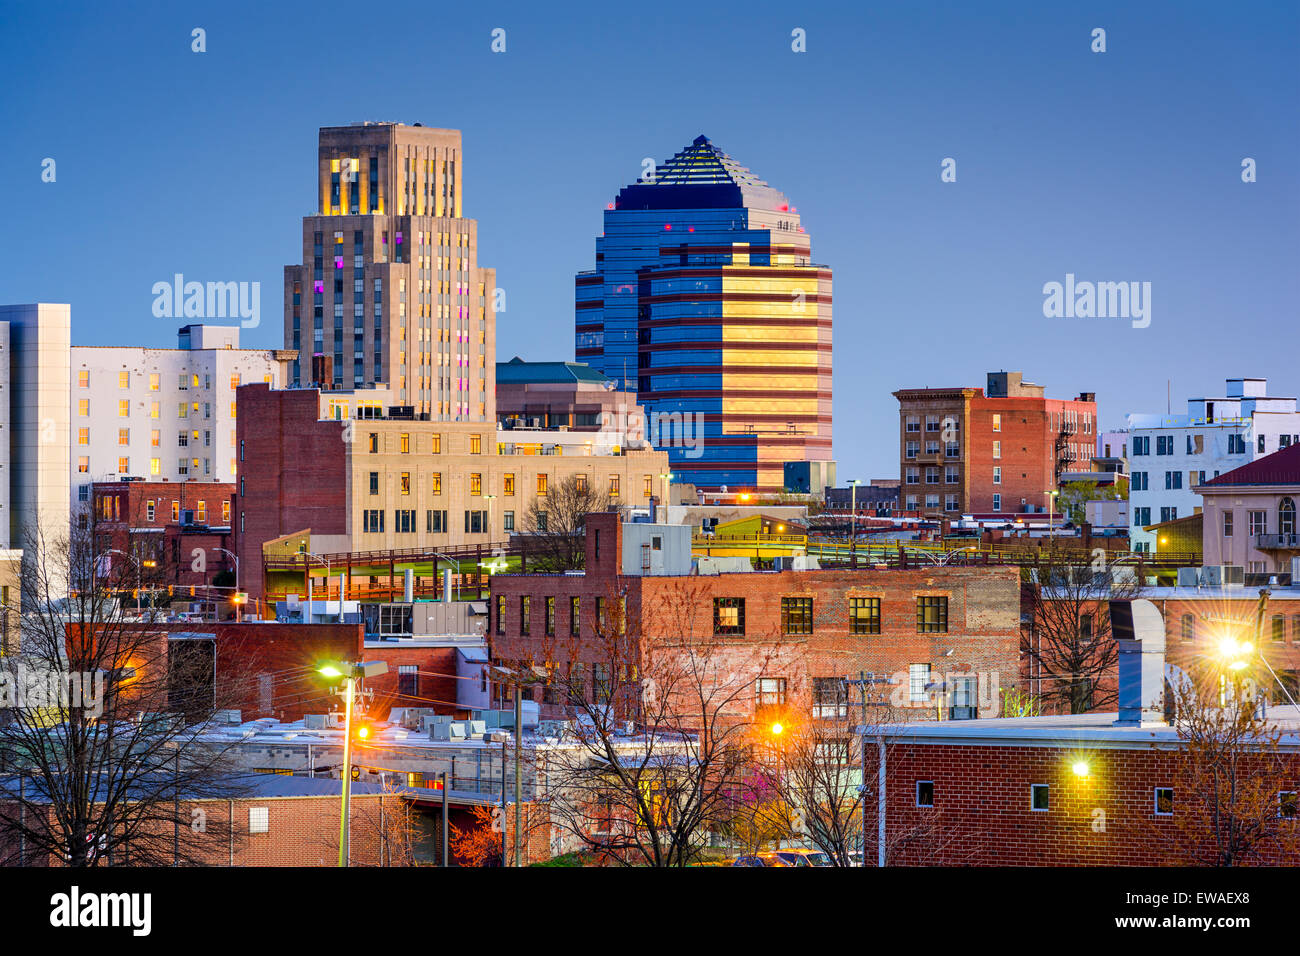 Durham, North Carolina, USA downtown skyline. - Stock Image